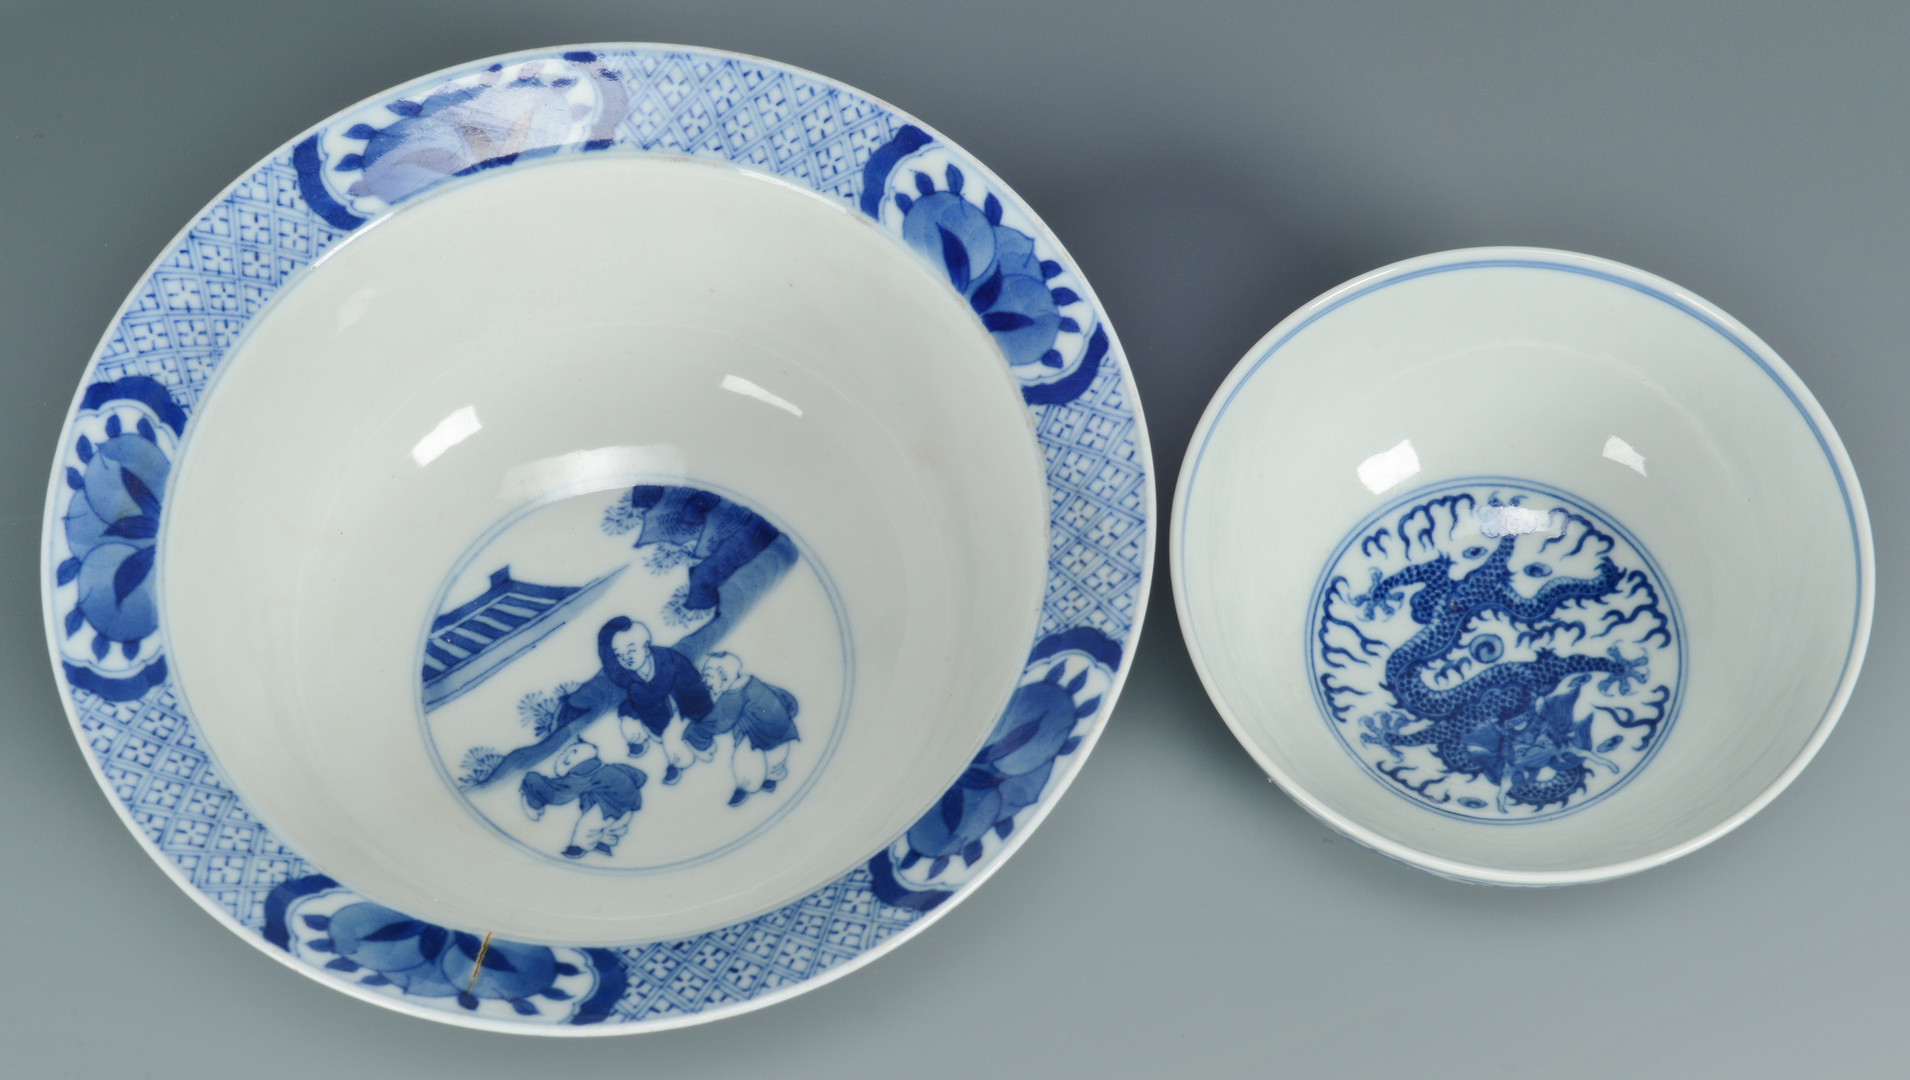 Lot 668: 2 Chinese Blue & White Porcelain Bowls